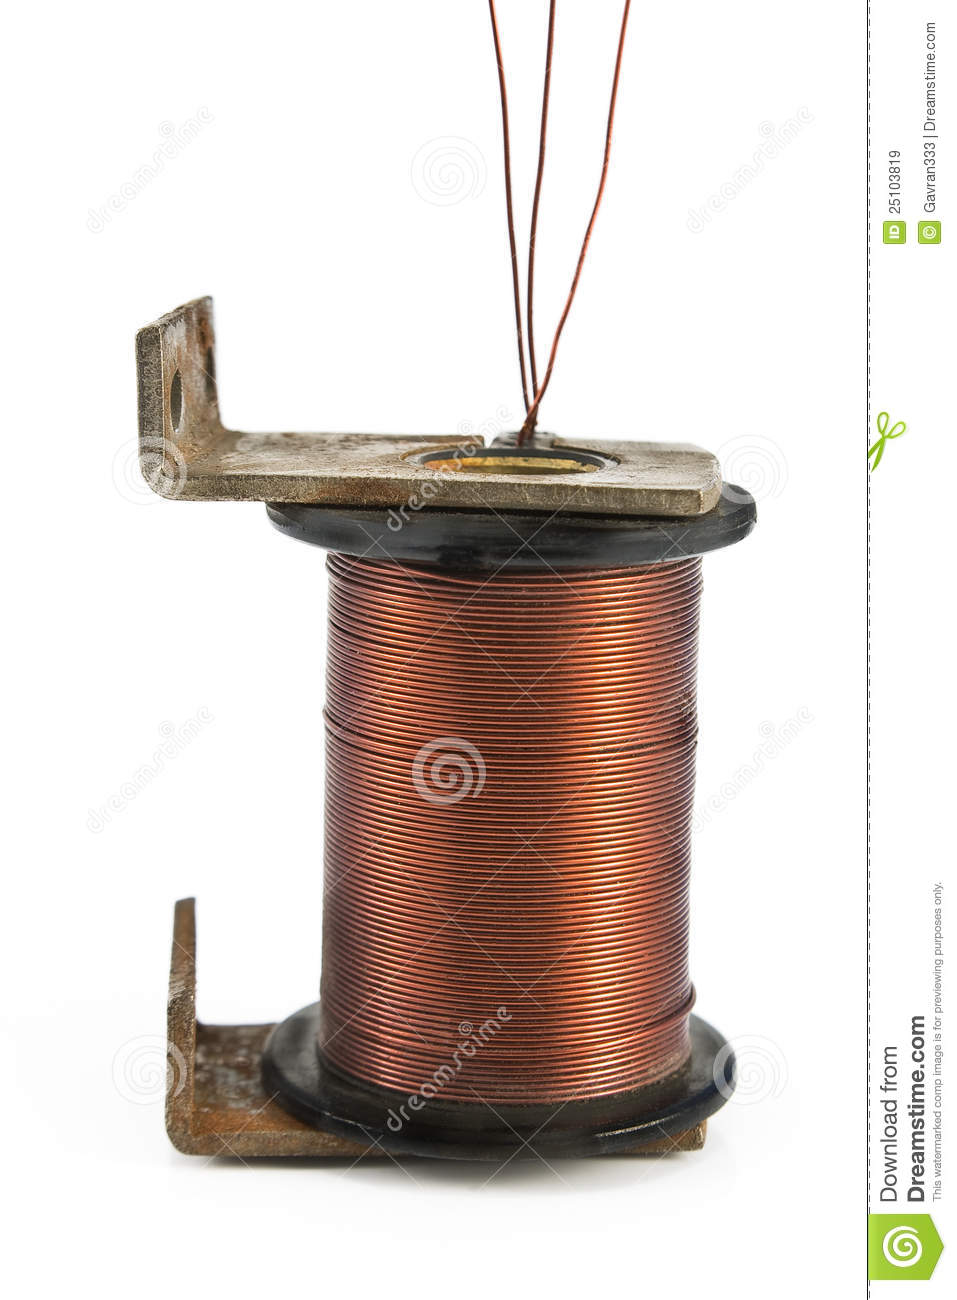 Electric Coil Motor Royalty Free Stock Images - Image: 25103819